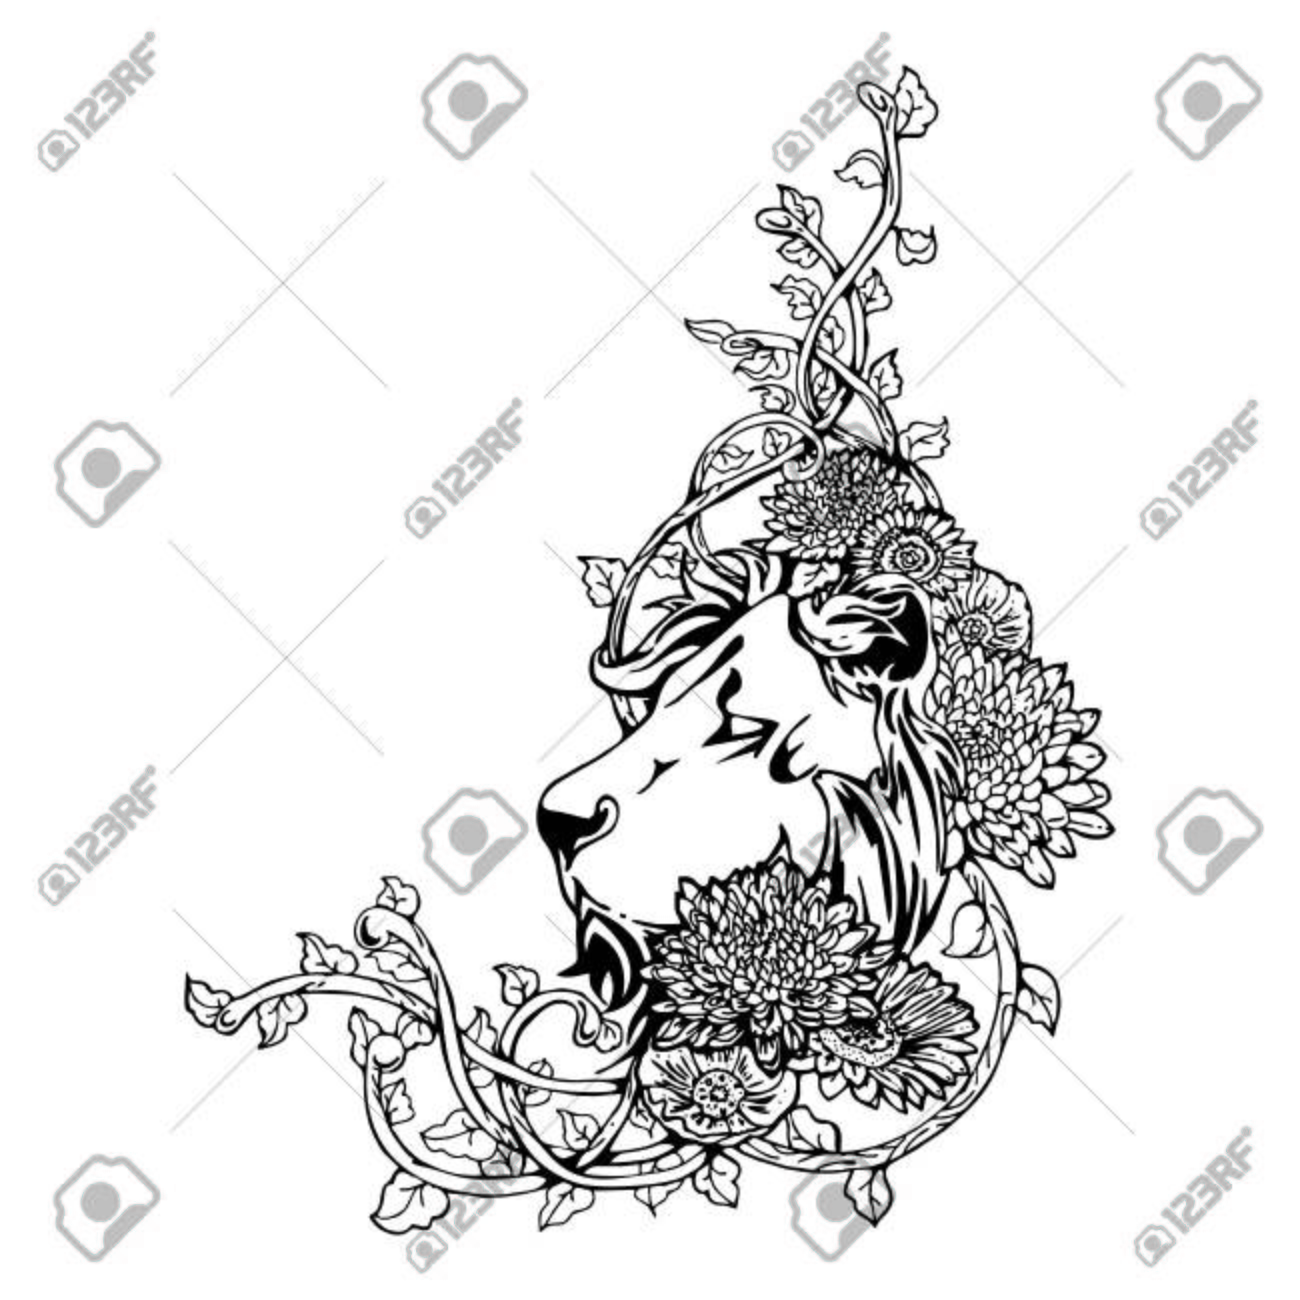 1300x1300 King Lion Head Vintage Drawing Tattoo With White Isolated Vector